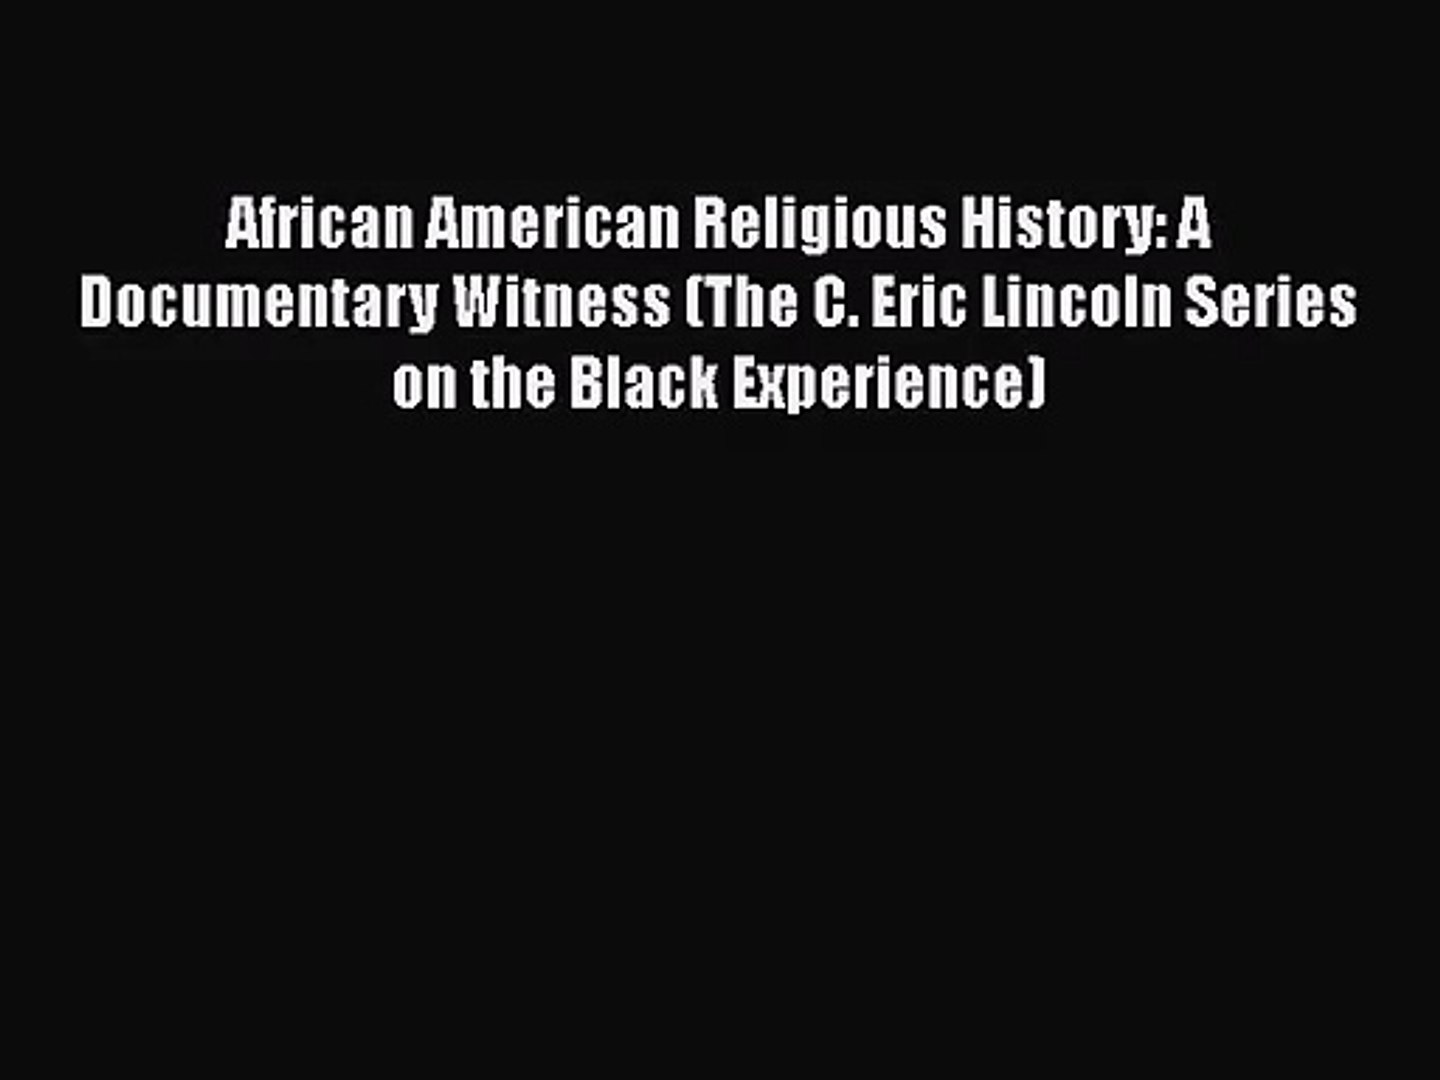 African American Religious History: A Documentary Witness (The C. Eric Lincoln Series on the